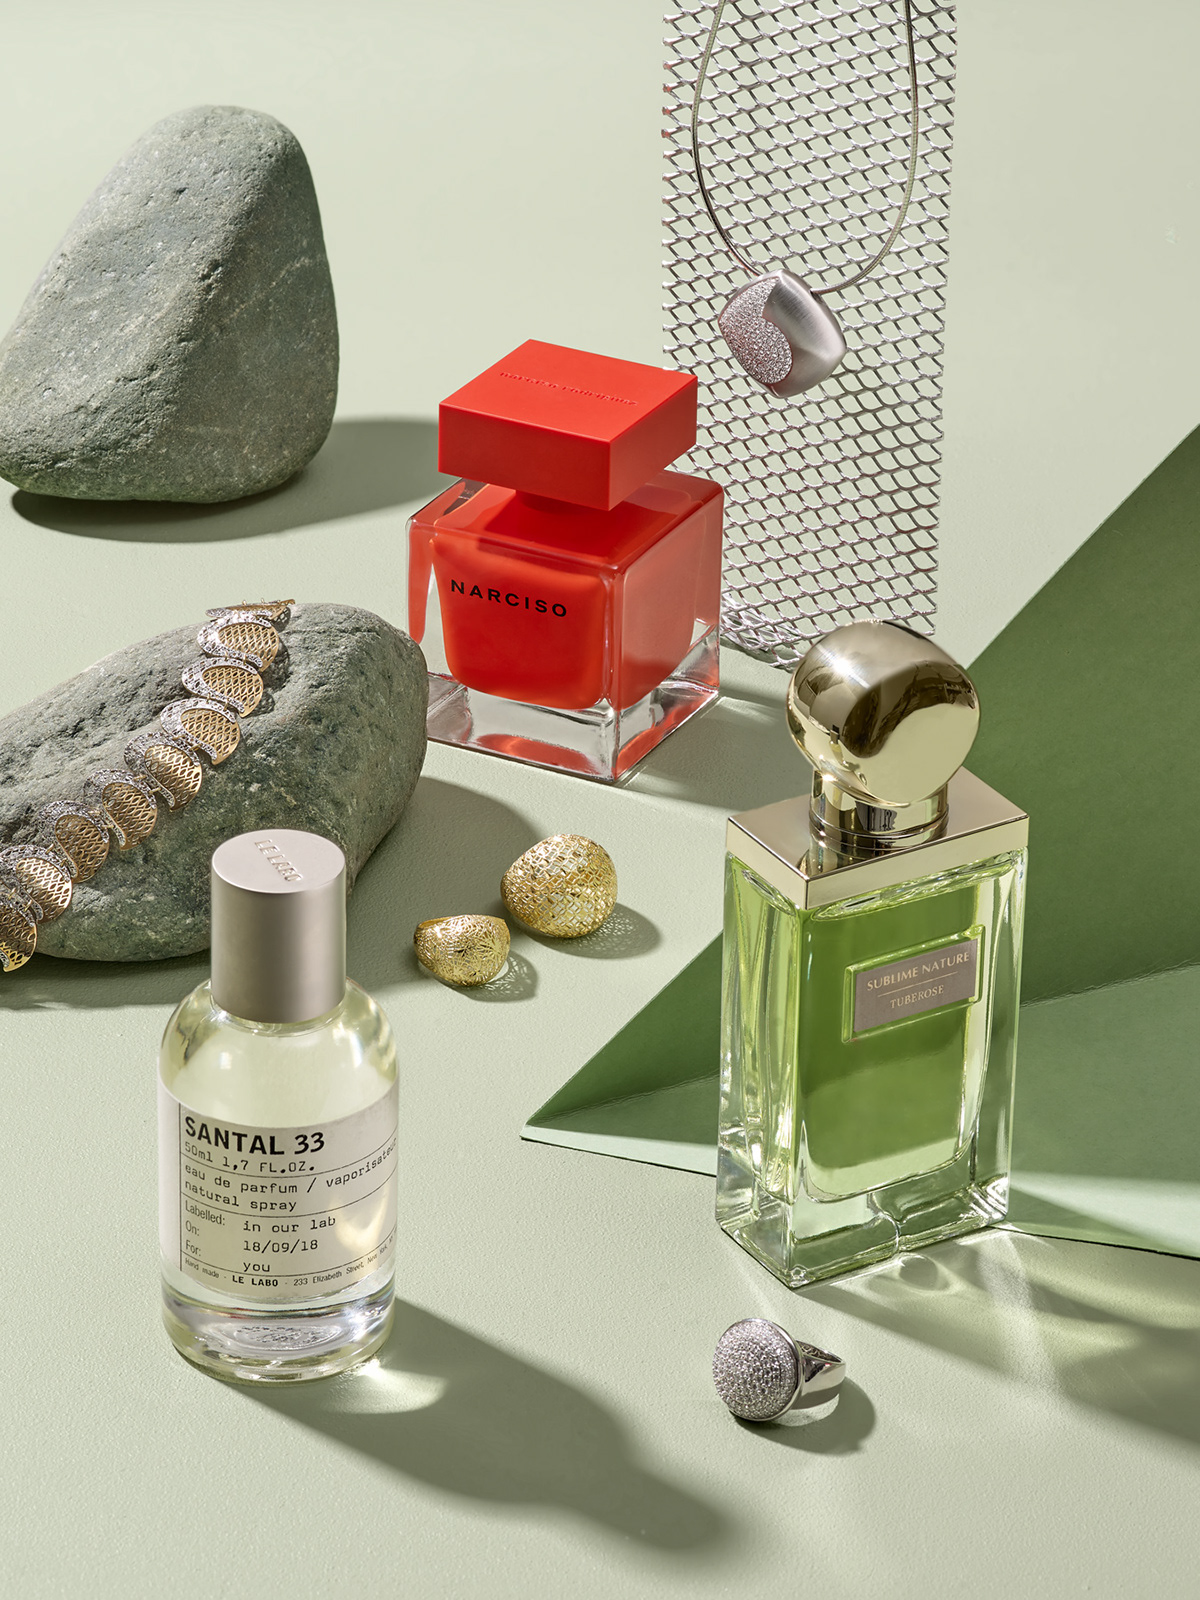 Still life with Narciso, Santal 33 perfume and Apart Jewellery for PANI Magazine